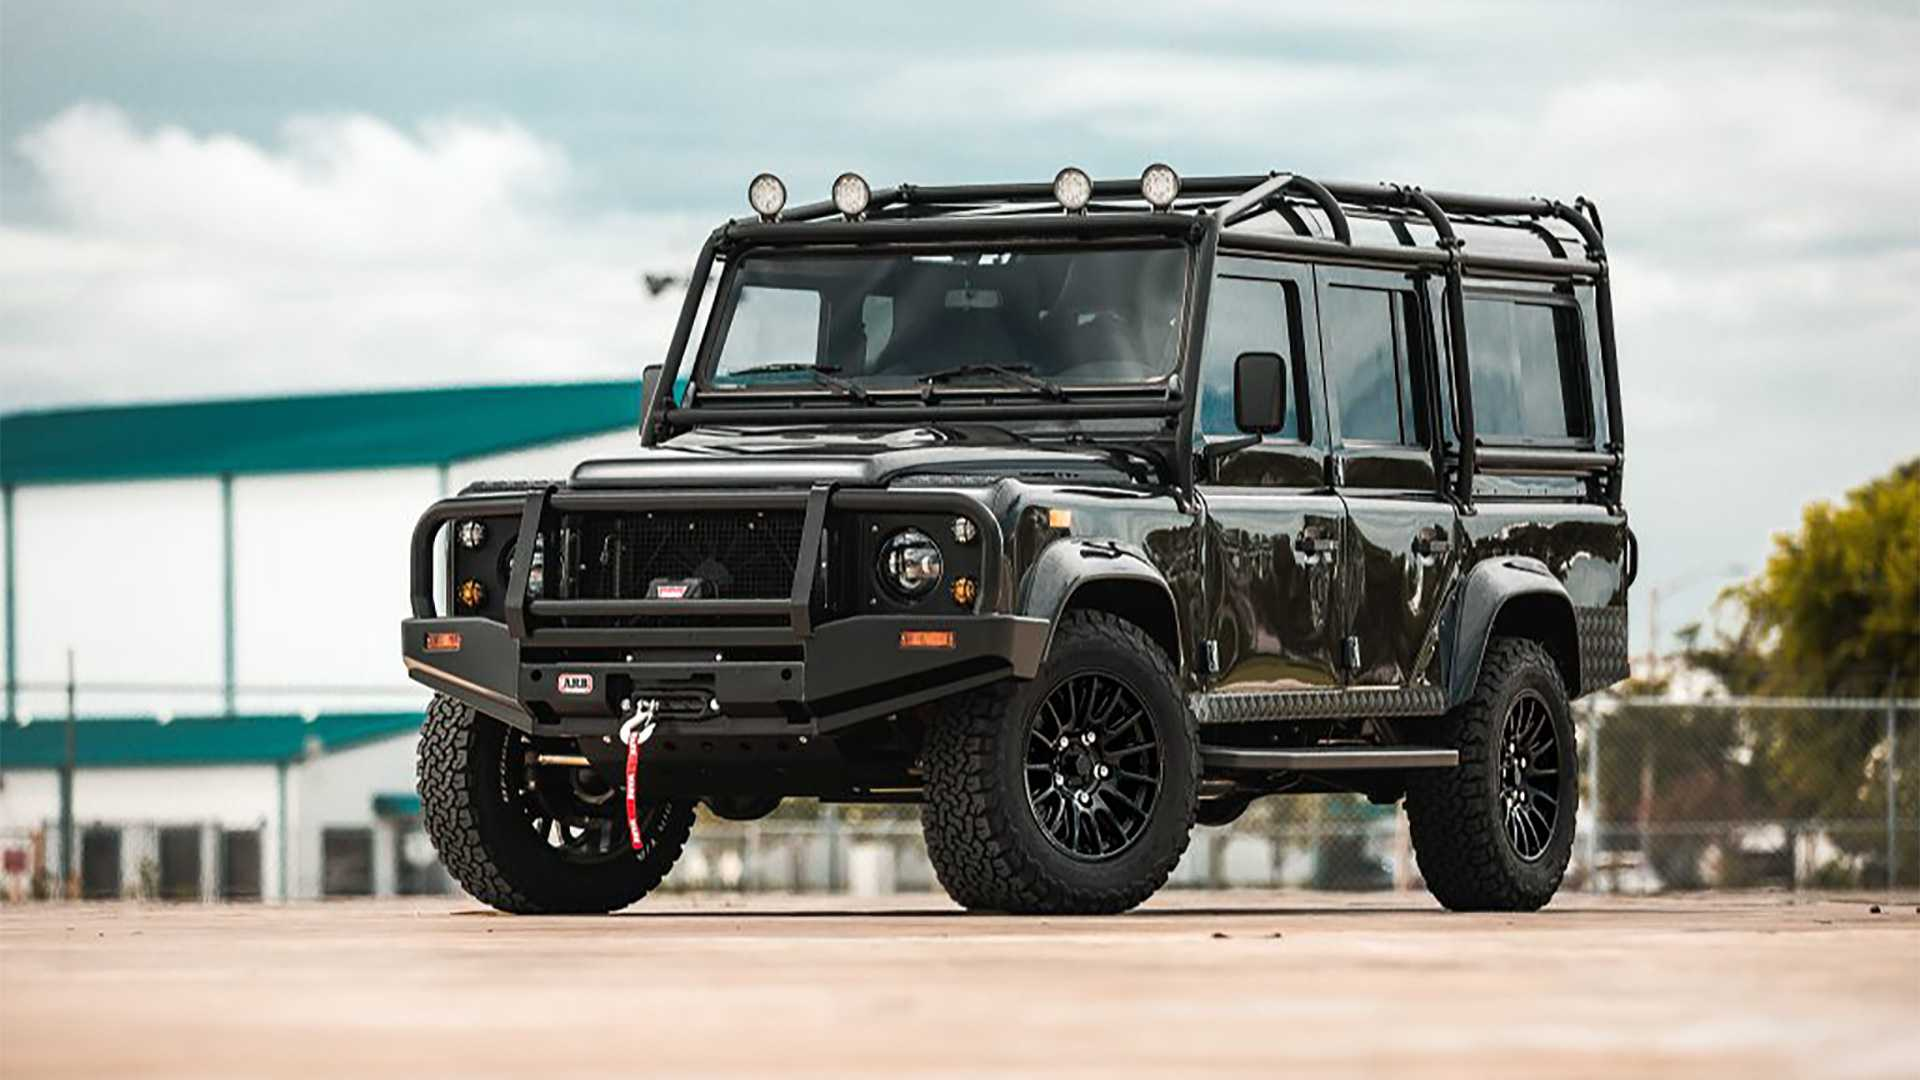 E.C.D. Automotive Design, North American tuner previously known as East Coast Defender, has produced another fully restored, heavily customized SUV. Rather than swap it for the usual LS3 V8, though, the team made it all-electric.